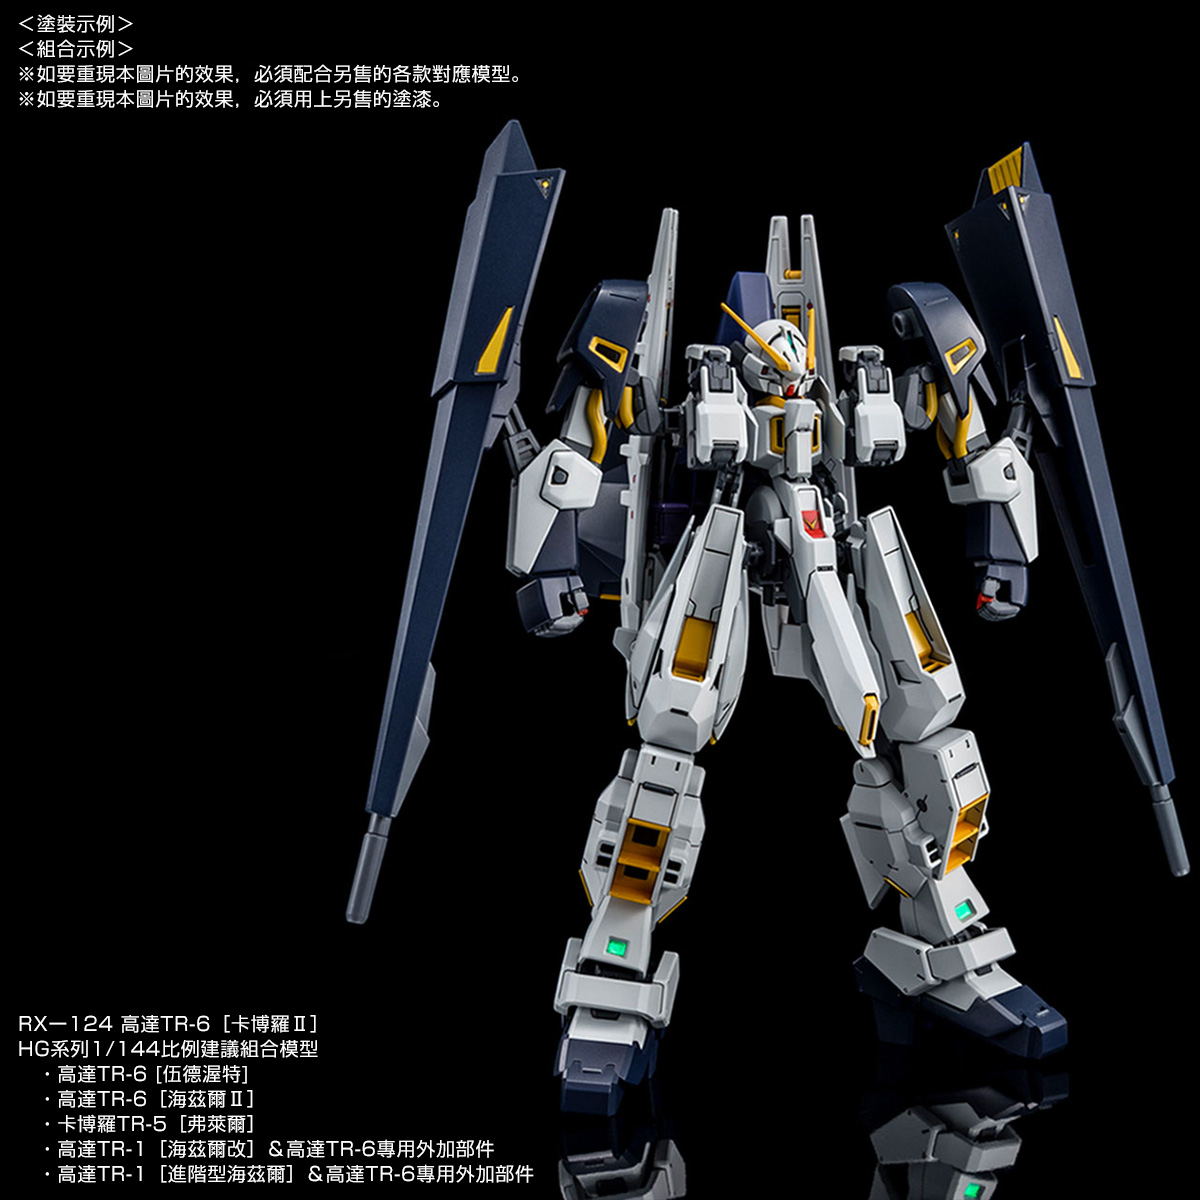 HG 1/144 GUNDAM TR-1 [ADVANCED HAZEL] & EXPANSION PARTS SET for GUNDAM TR-6 [Jan 2020 Delivery]